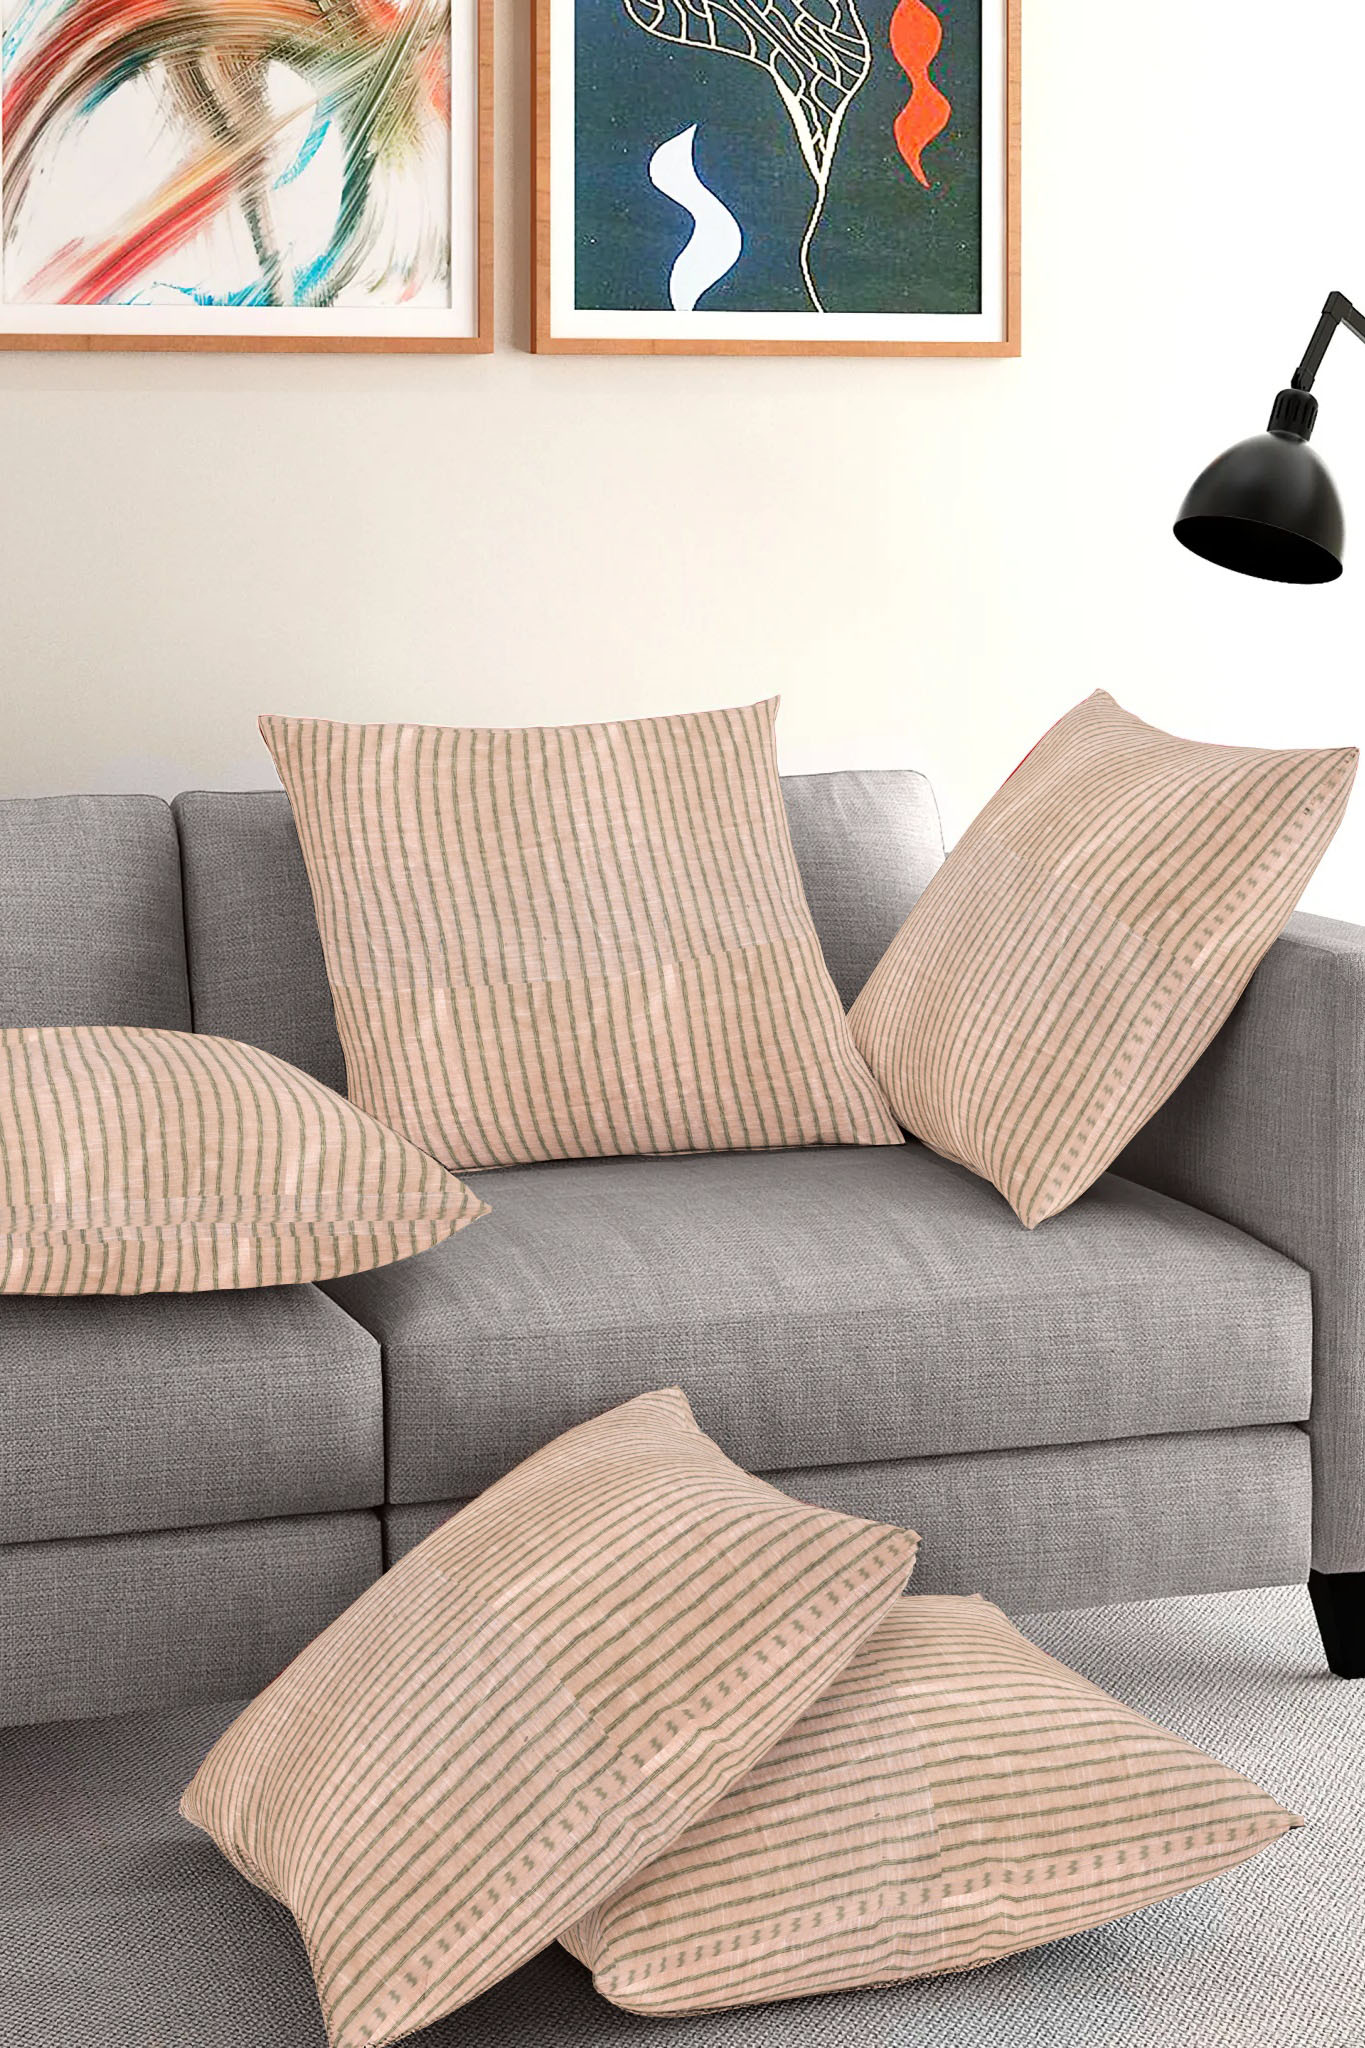 Set of 5-Beige Black Cotton Cushion Cover-35398-16x16 Inches